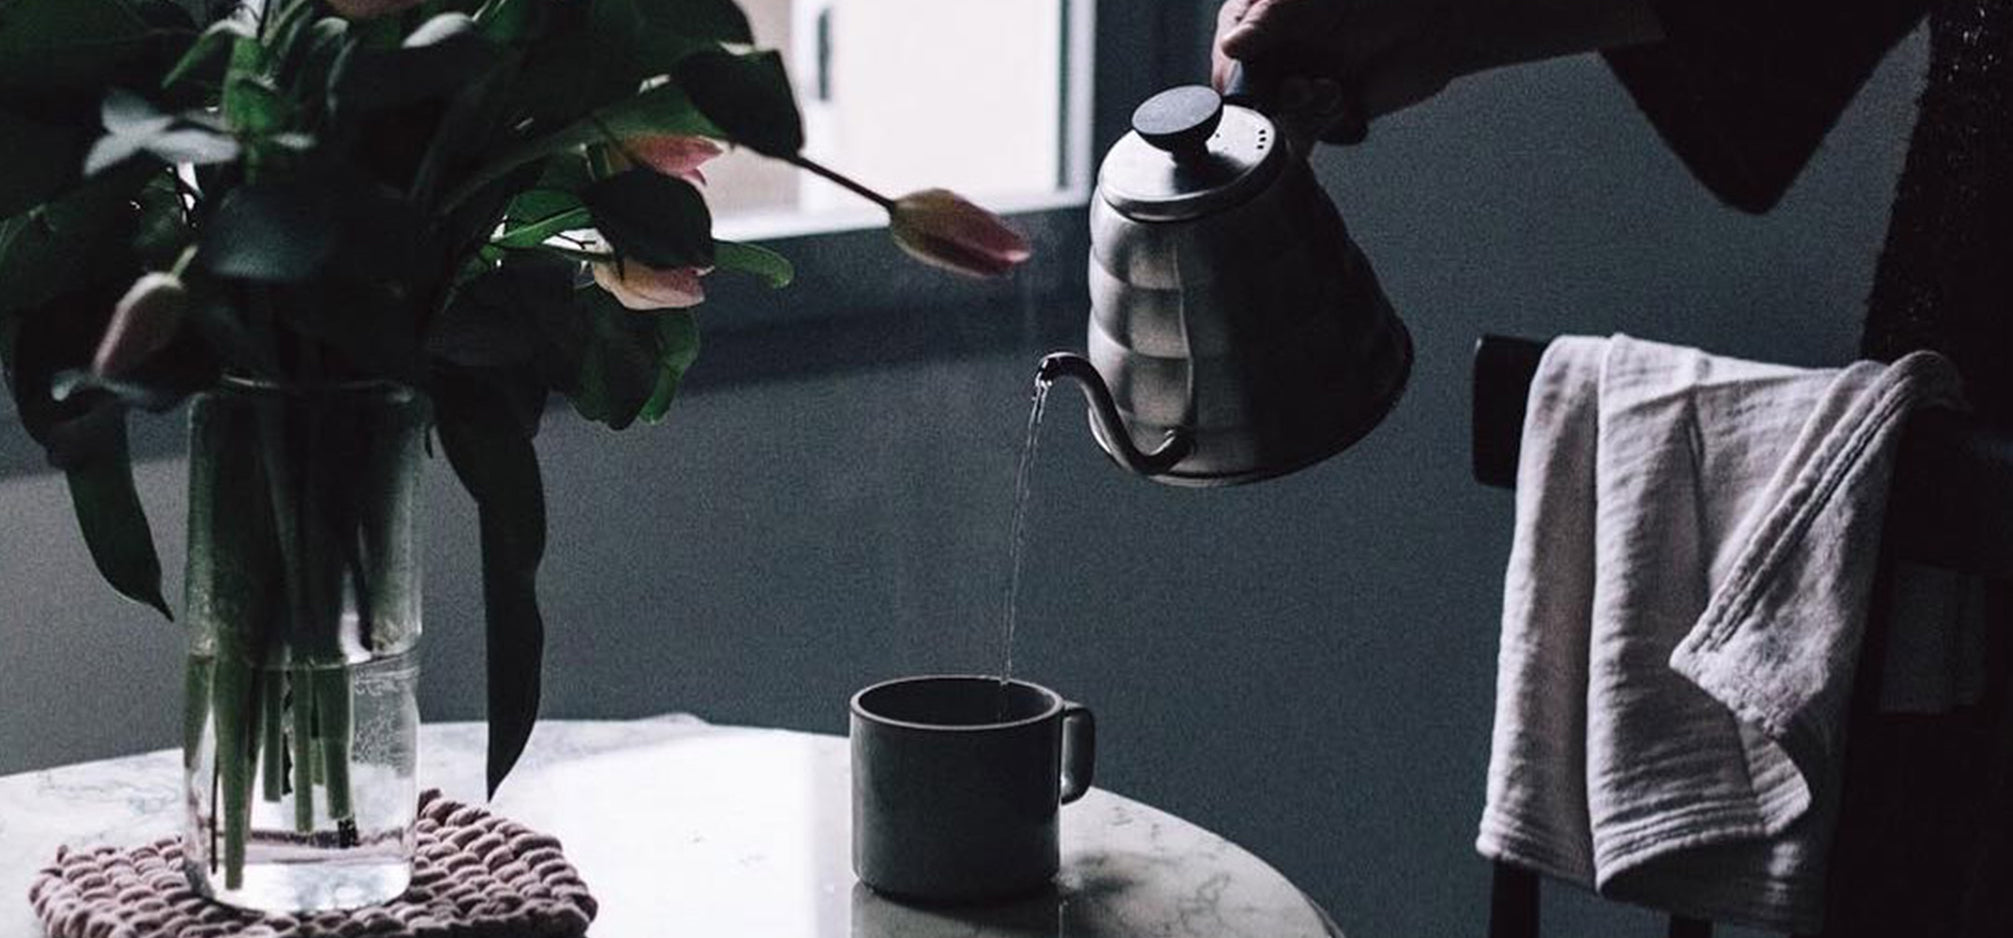 Someone pouring a kettle into a mug next to a bouquet of tulips.